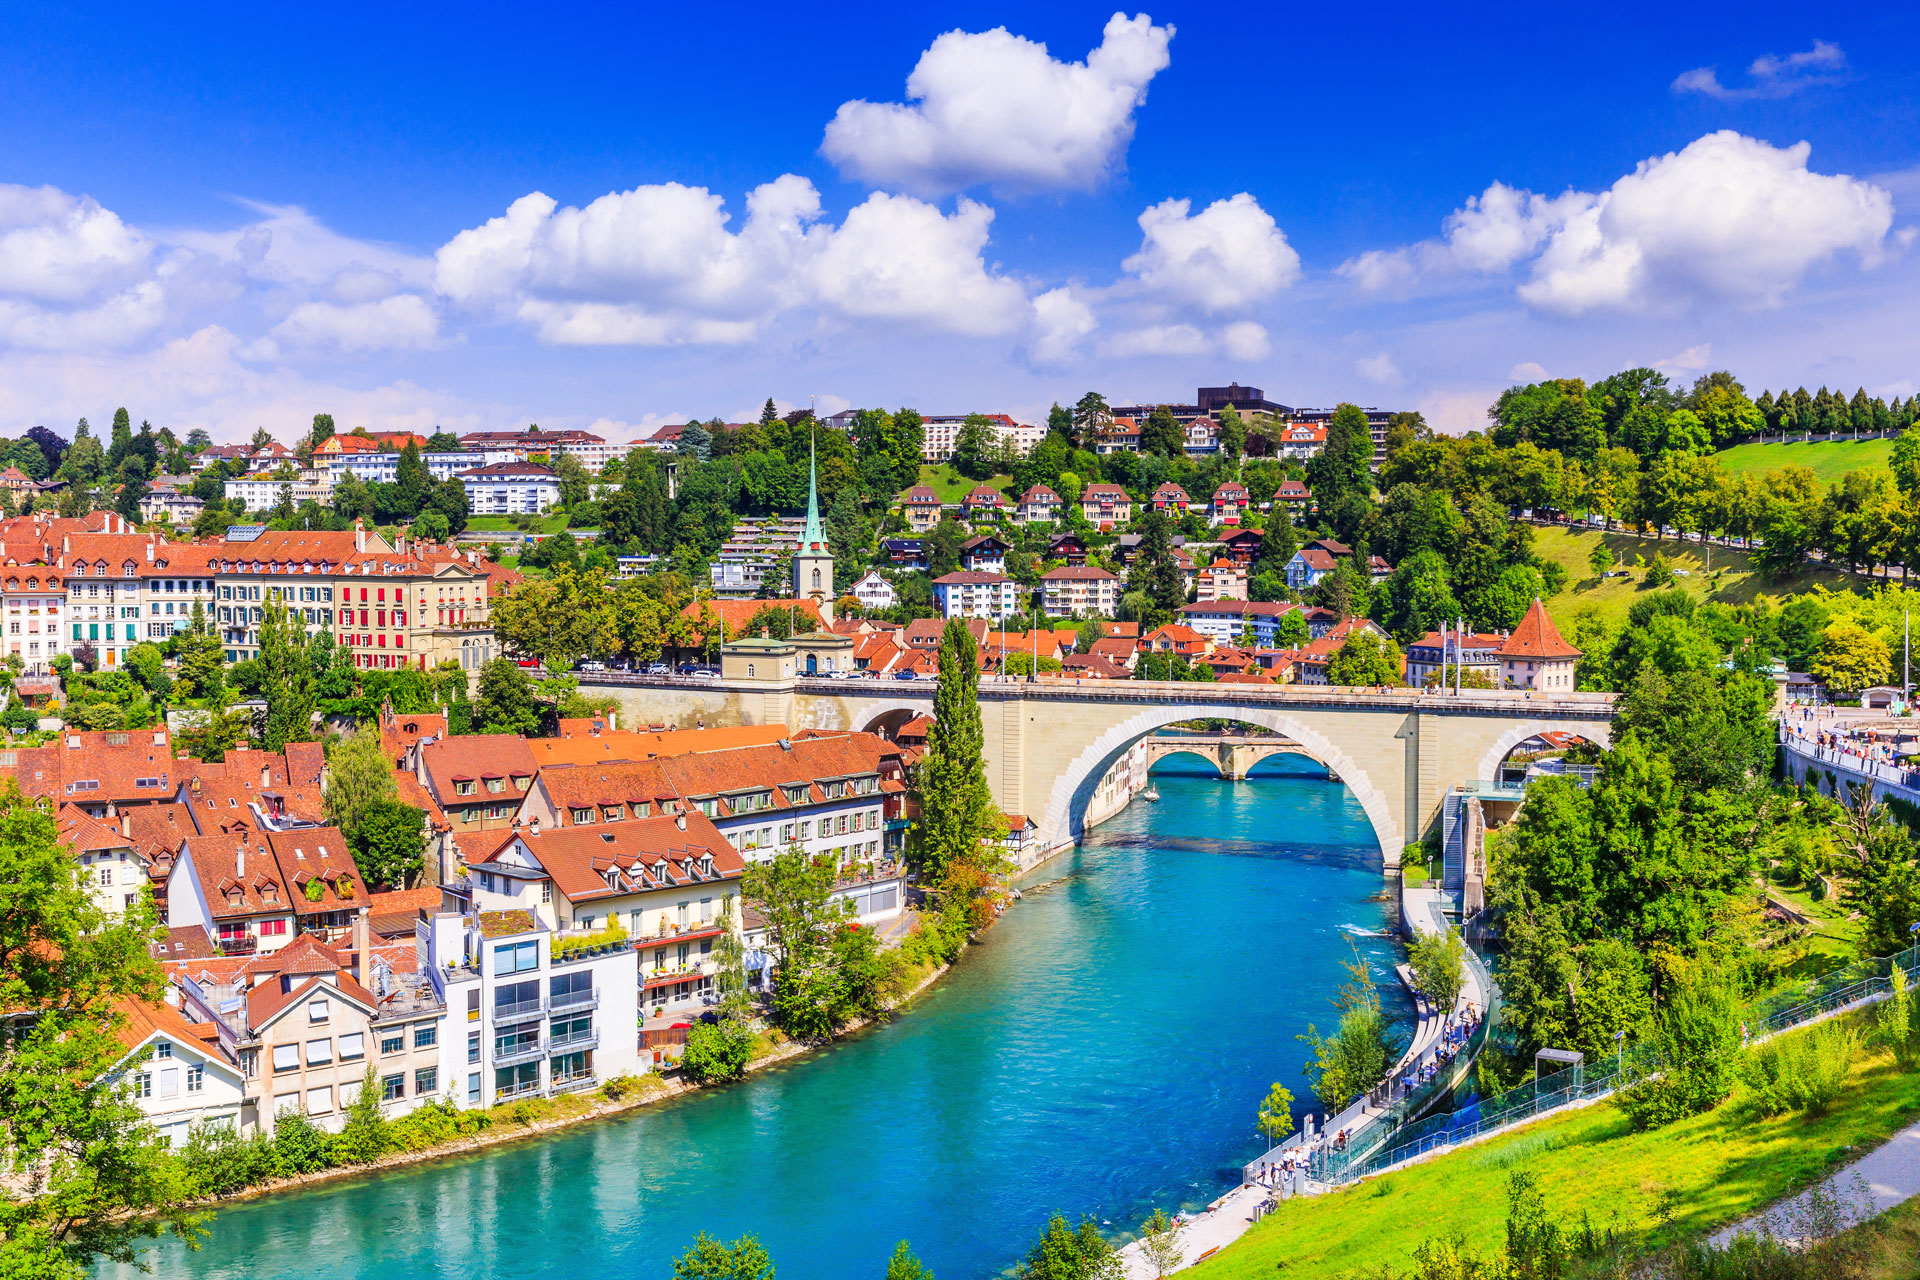 Aare-River-in-Bern-Switzerland.jpg